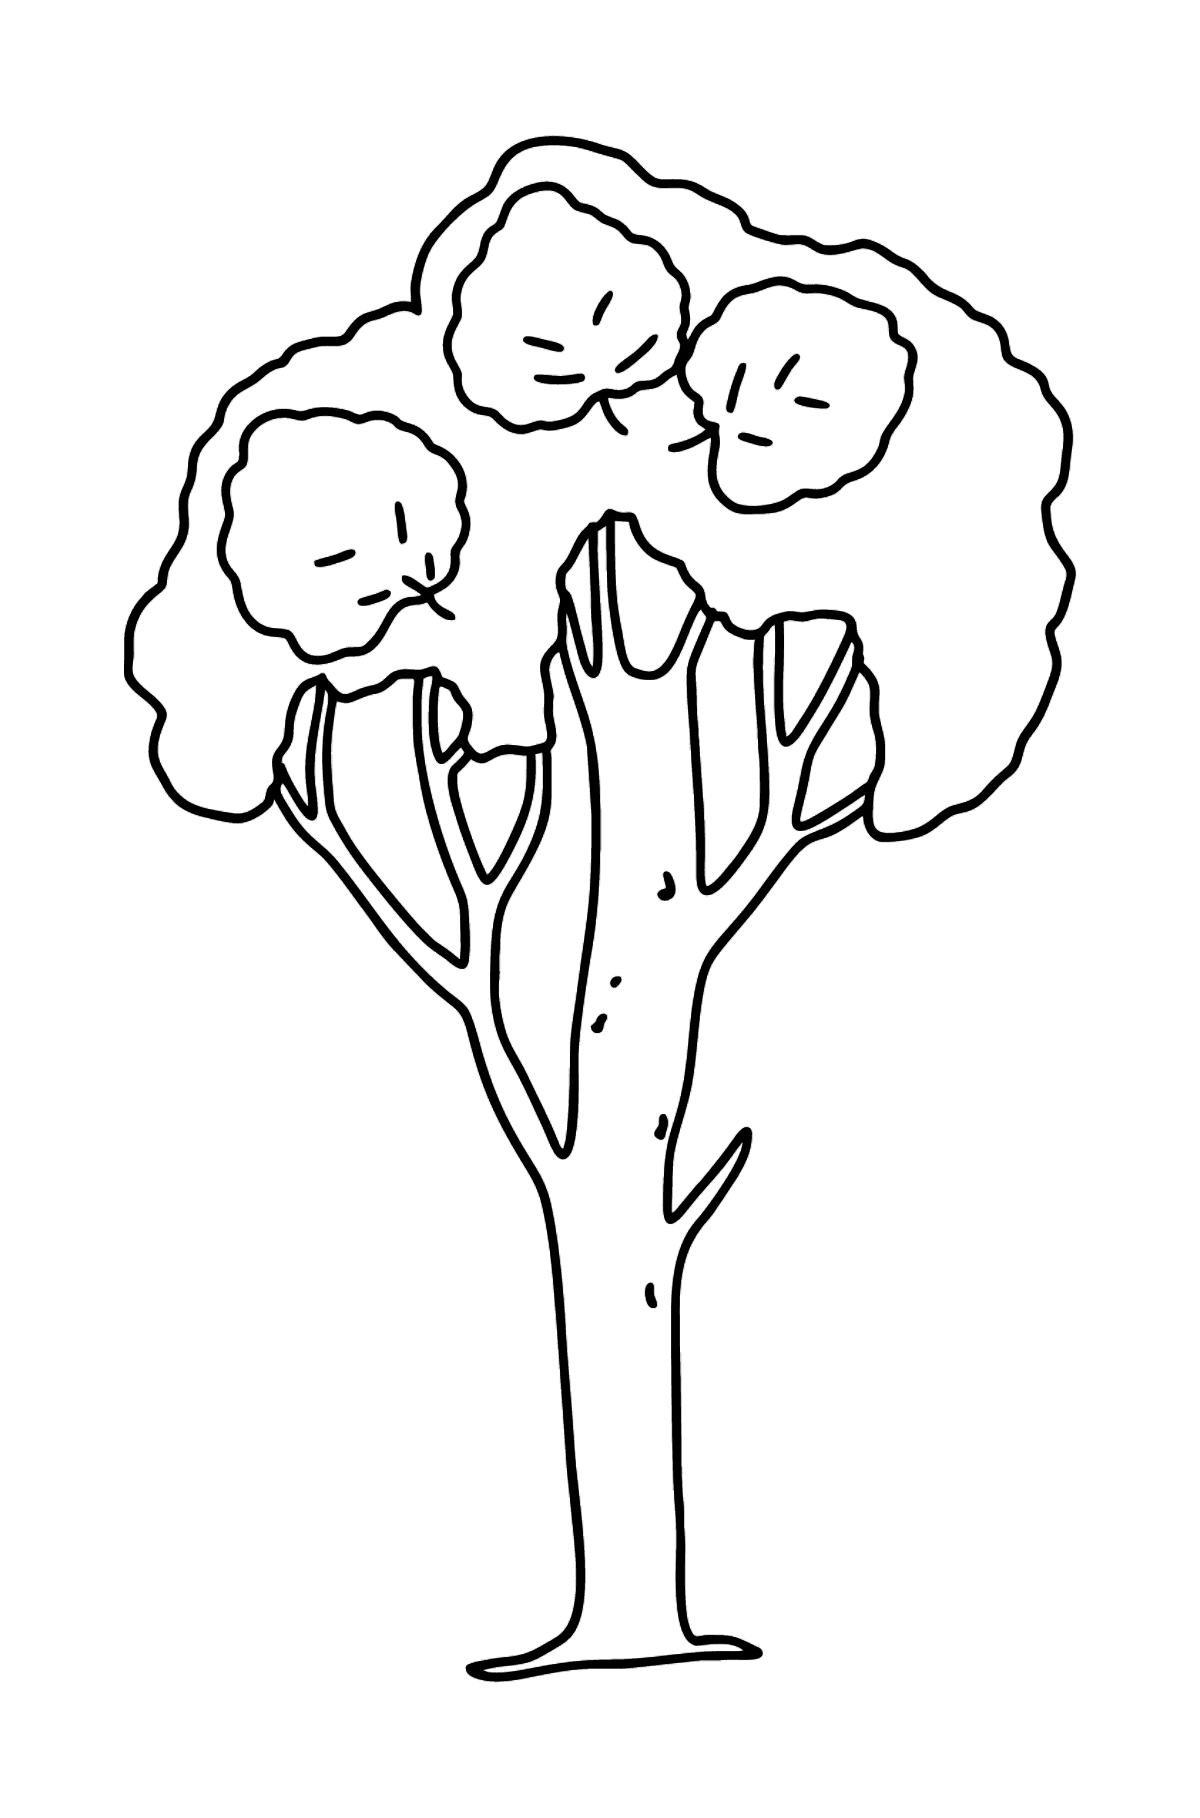 Aspen coloring page - Coloring Pages for Kids